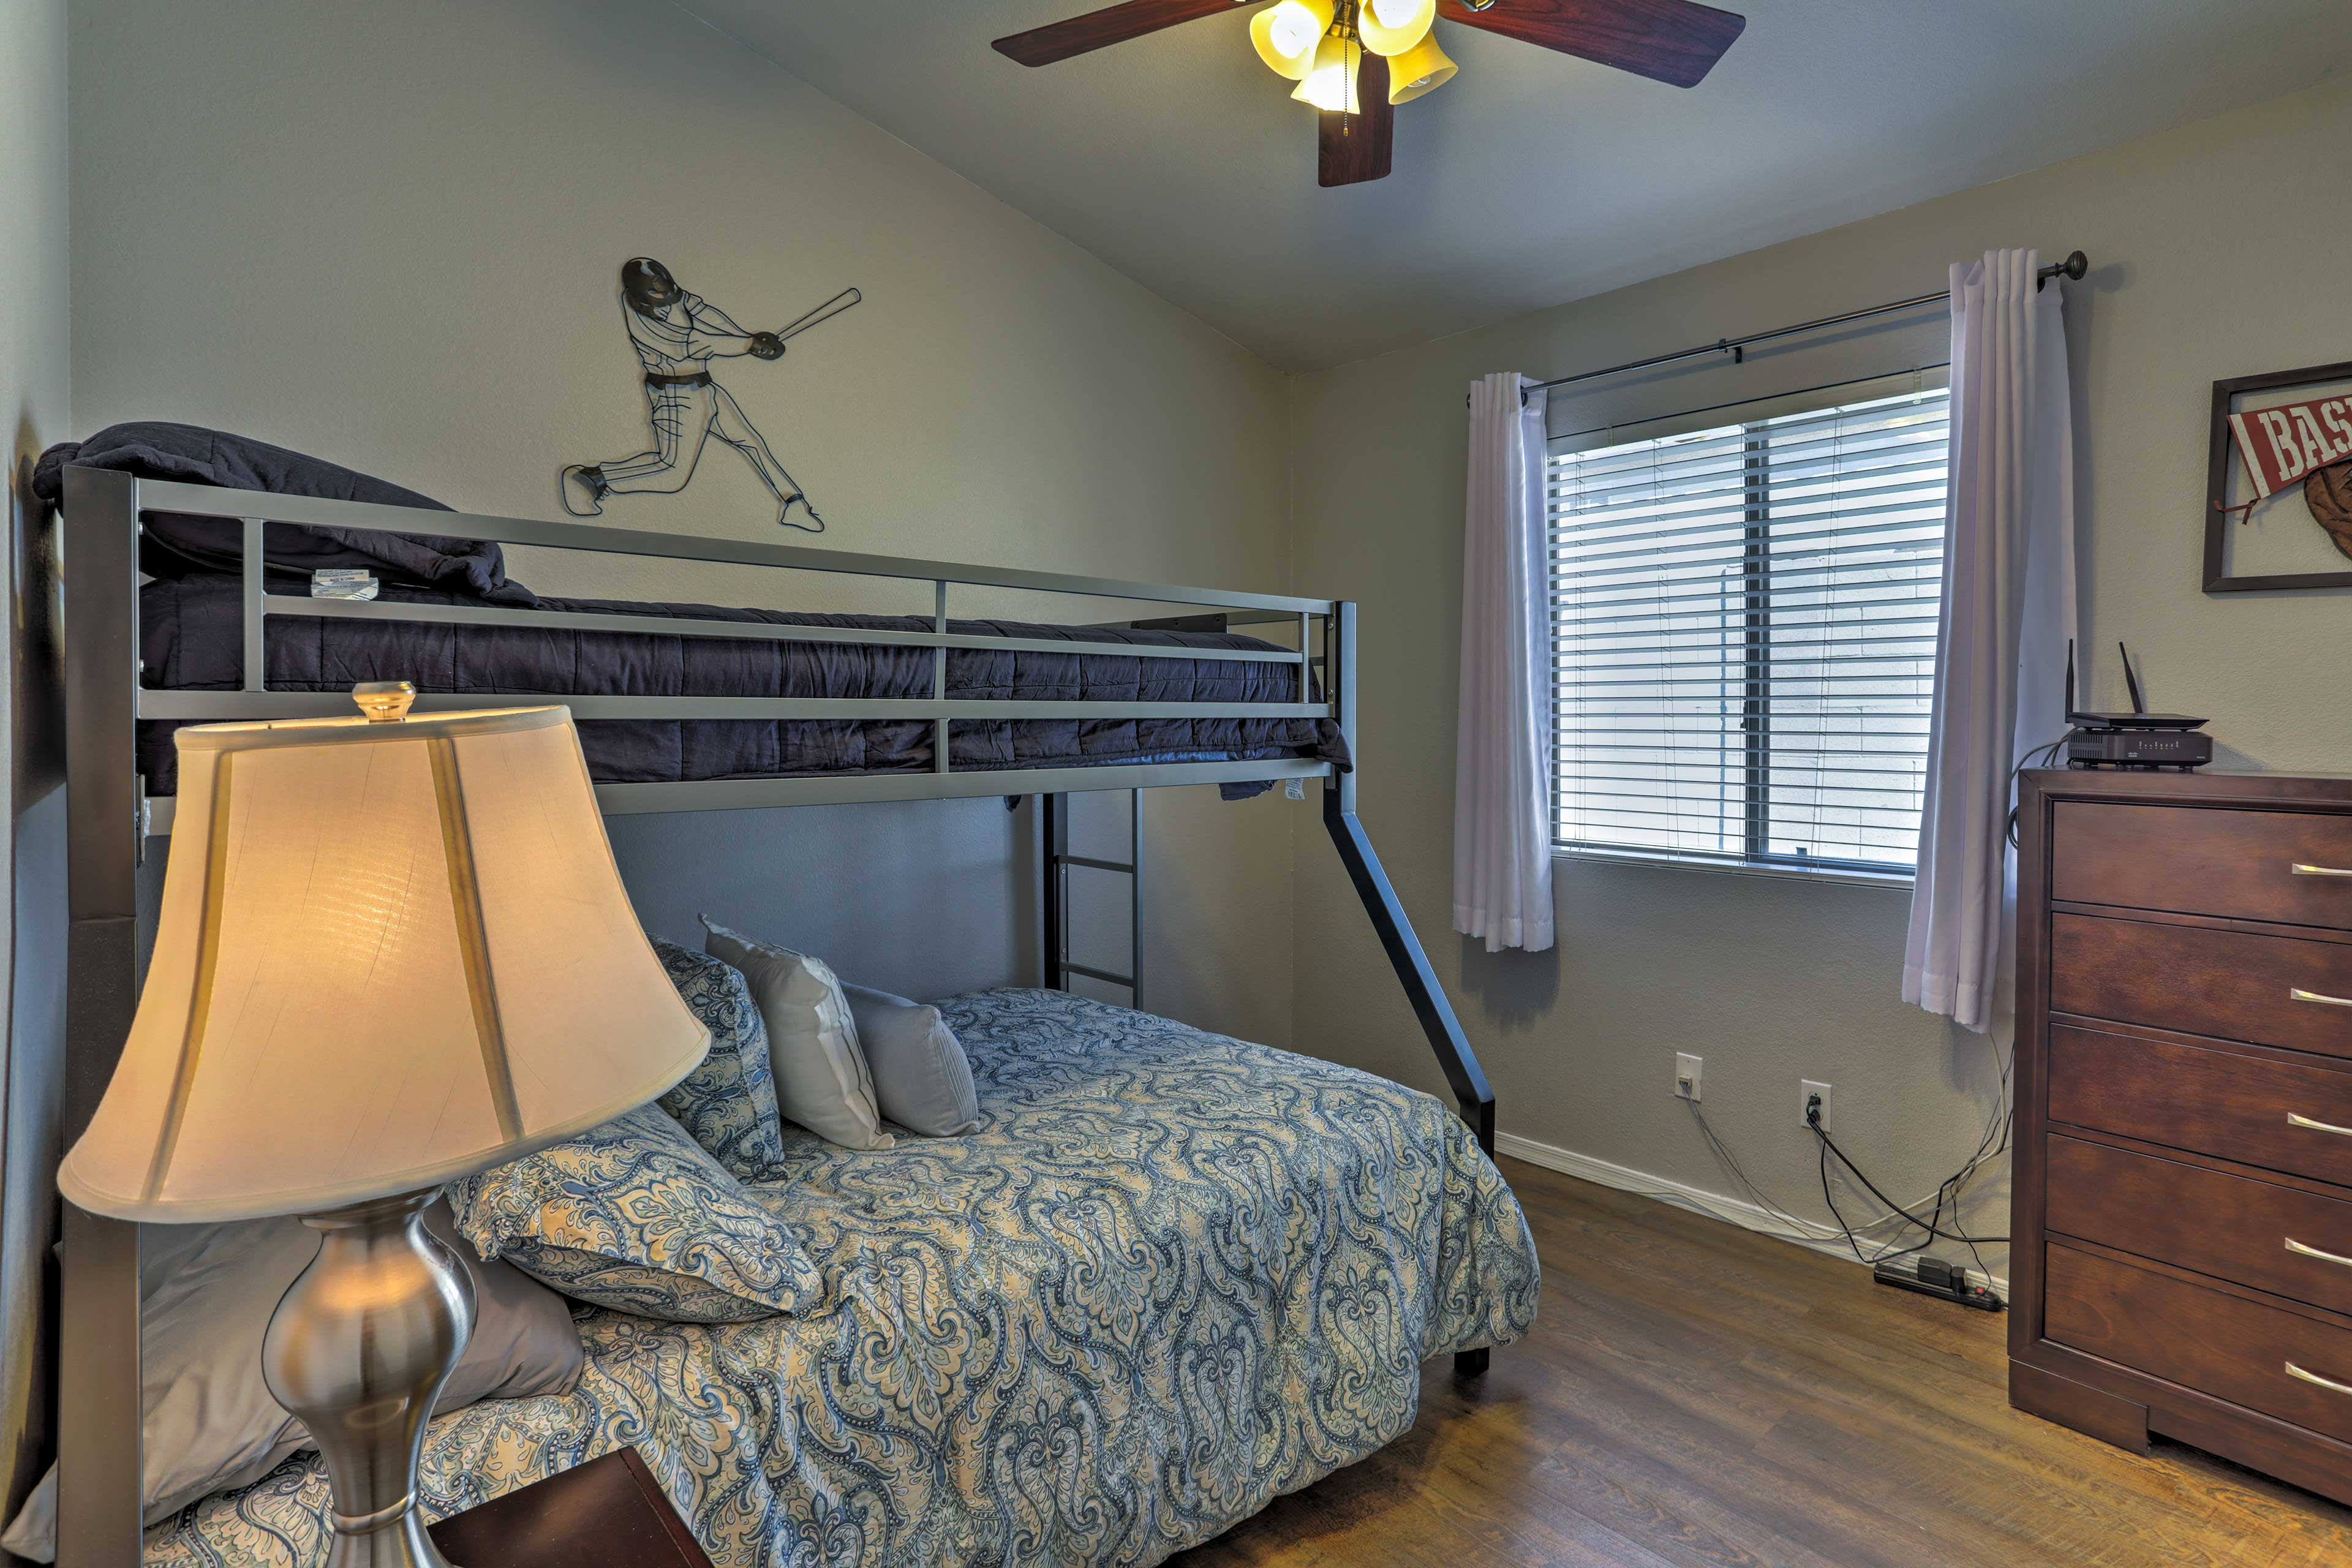 The third bedroom features a twin-over-full bunk bed.